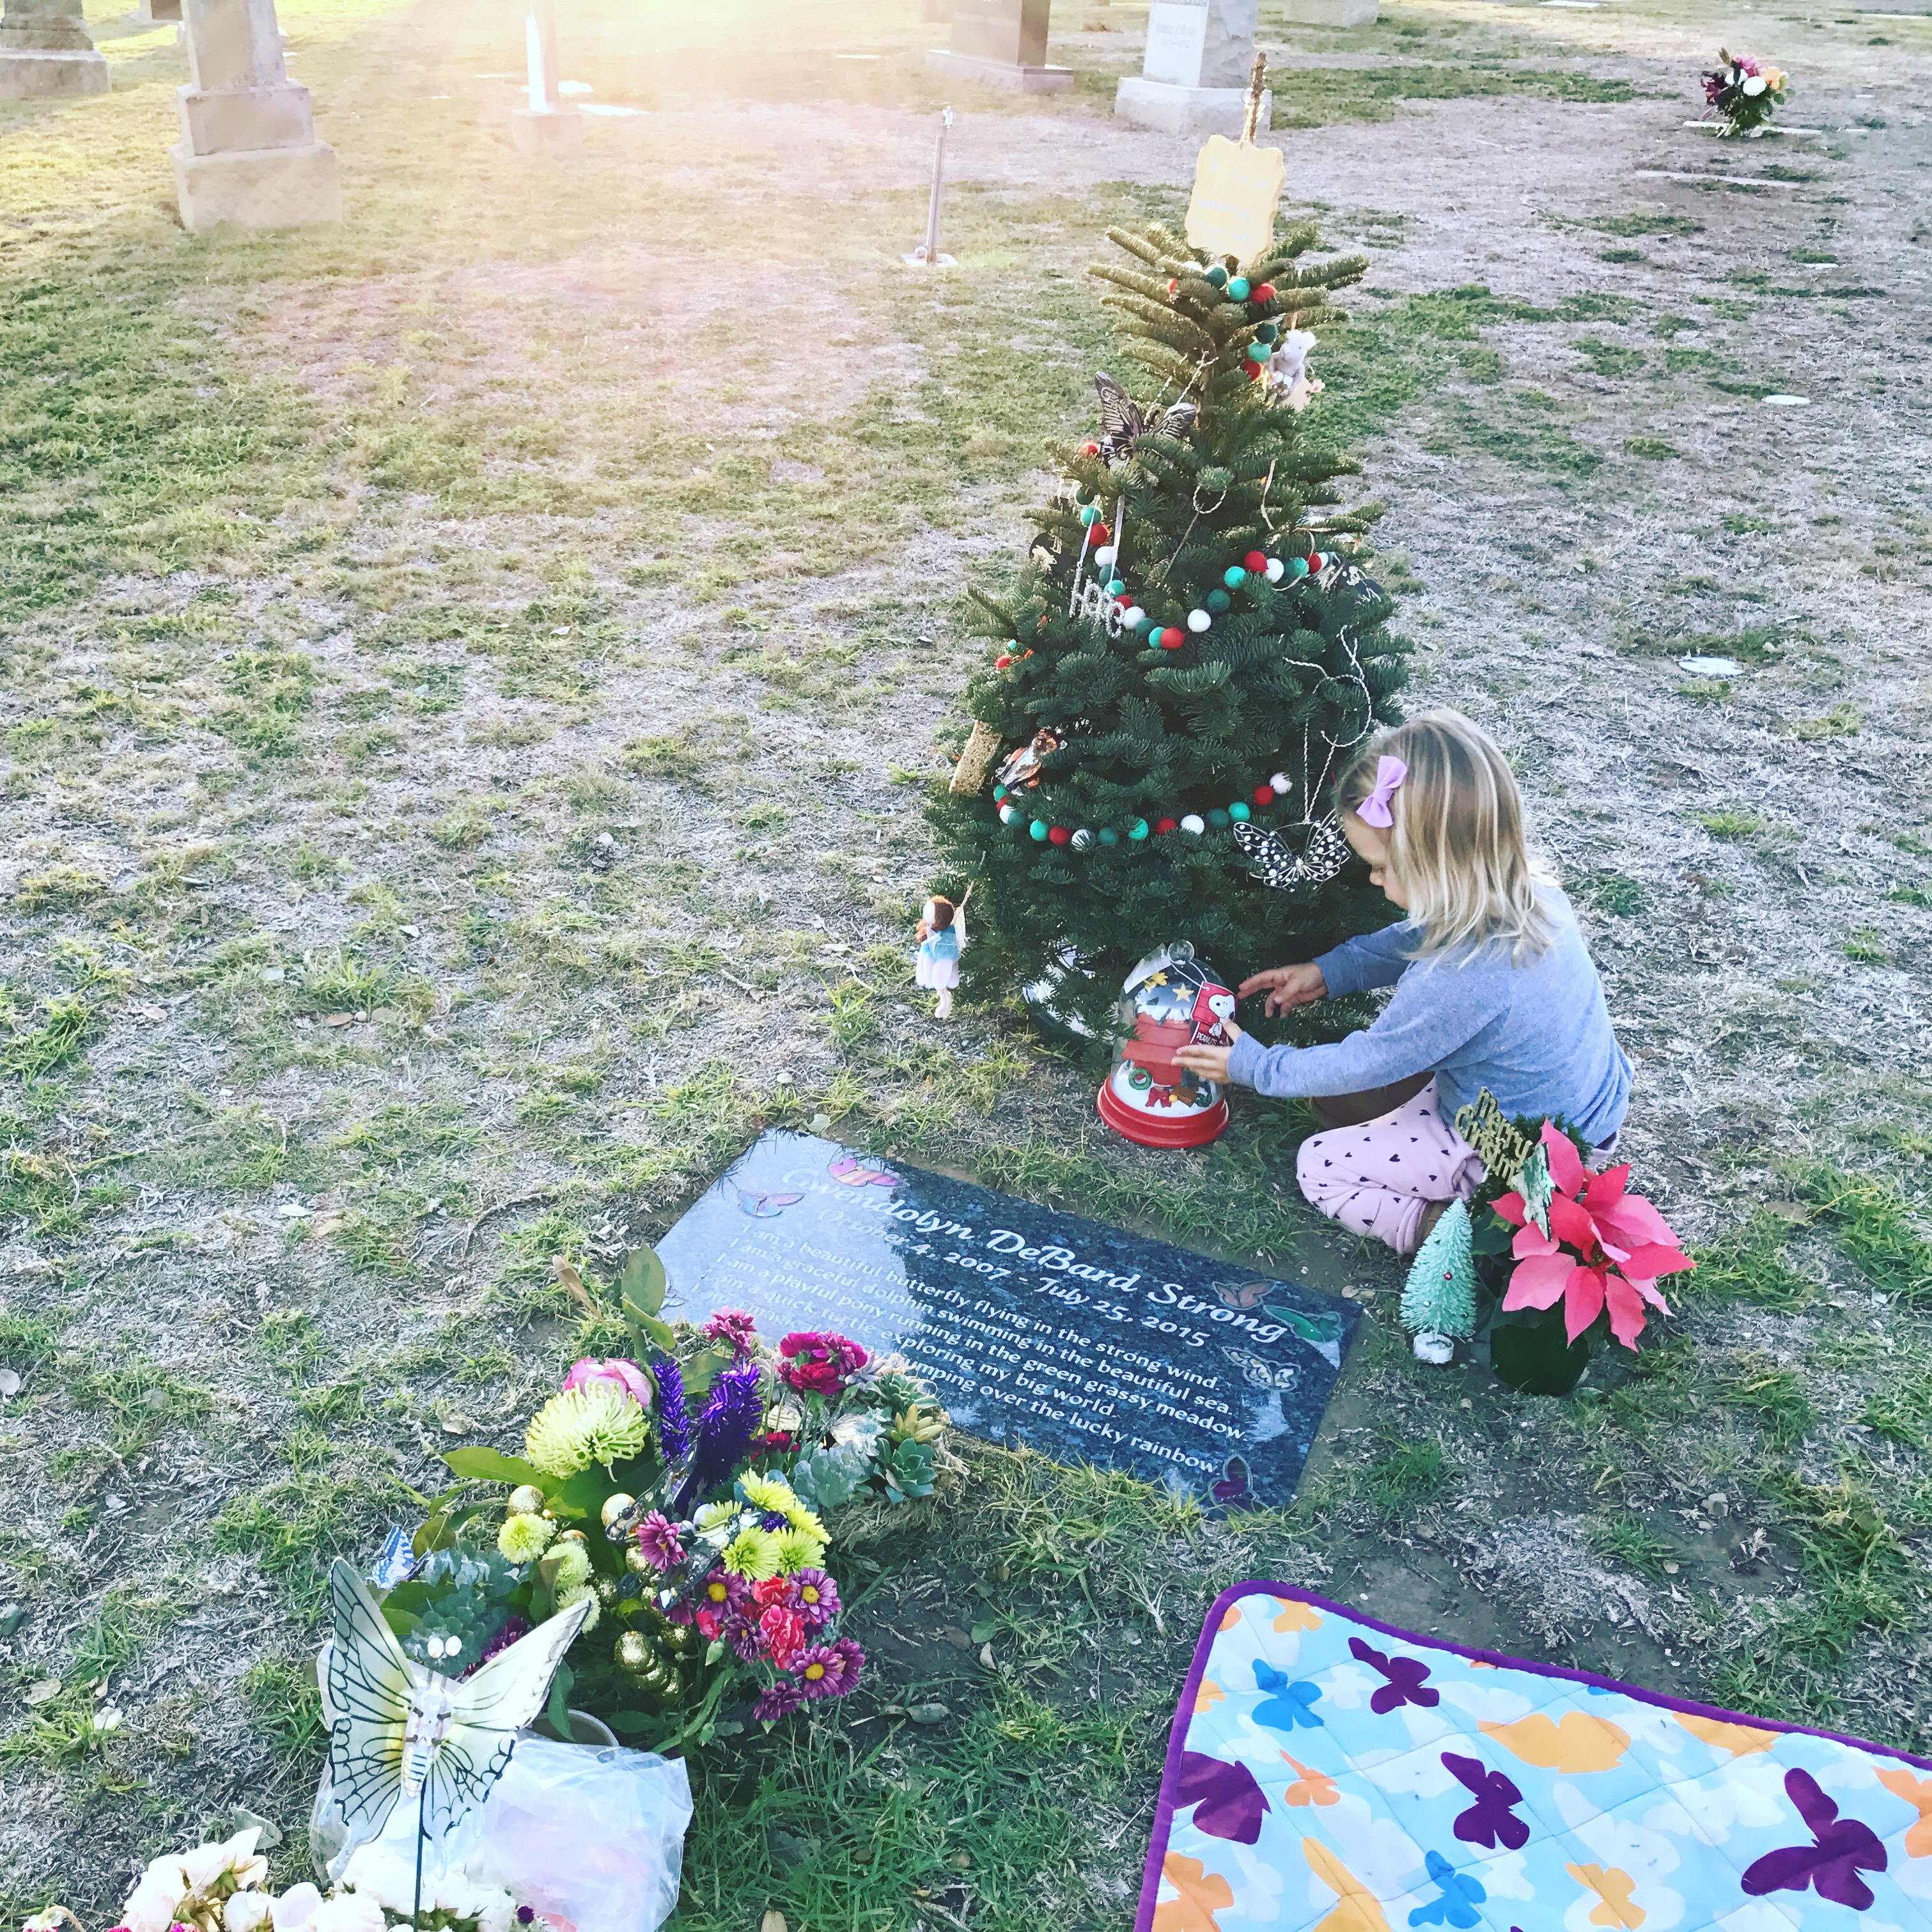 The author's daughter decorating her sister's Christmas tree at the cemetery